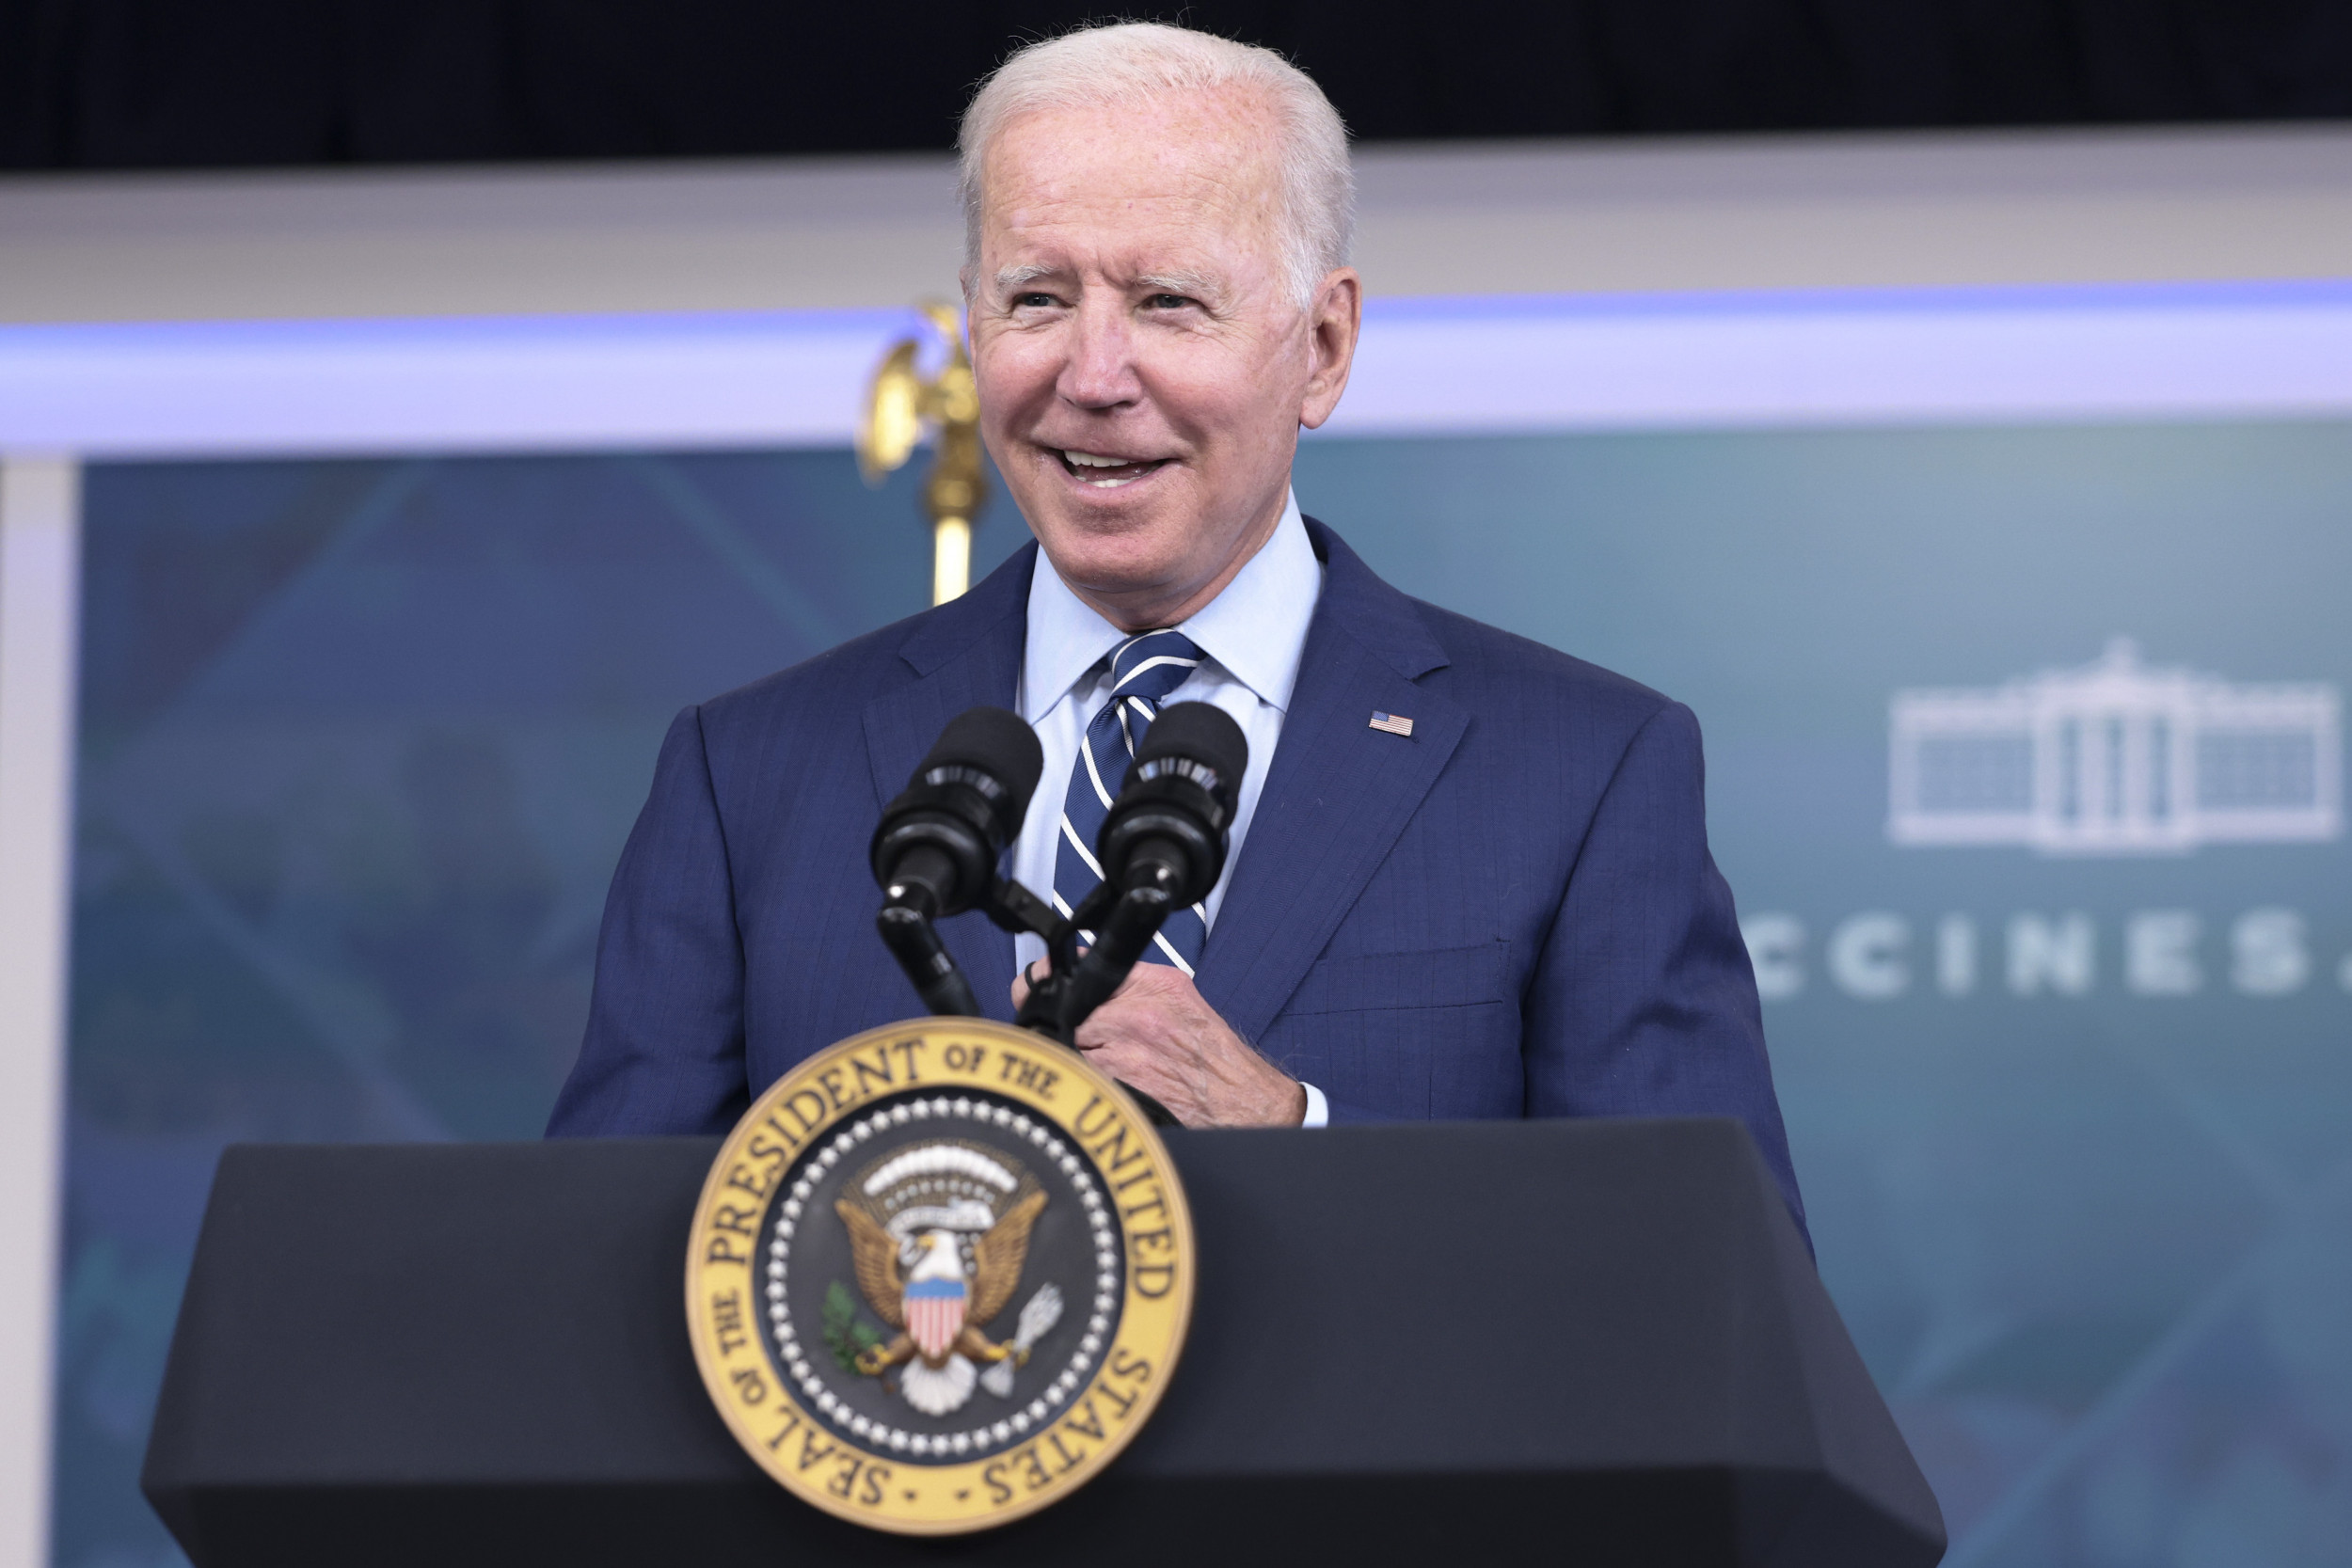 Joe Biden Braces for What Would Be Earliest Government Shutdown in Any Administration - Newsweek